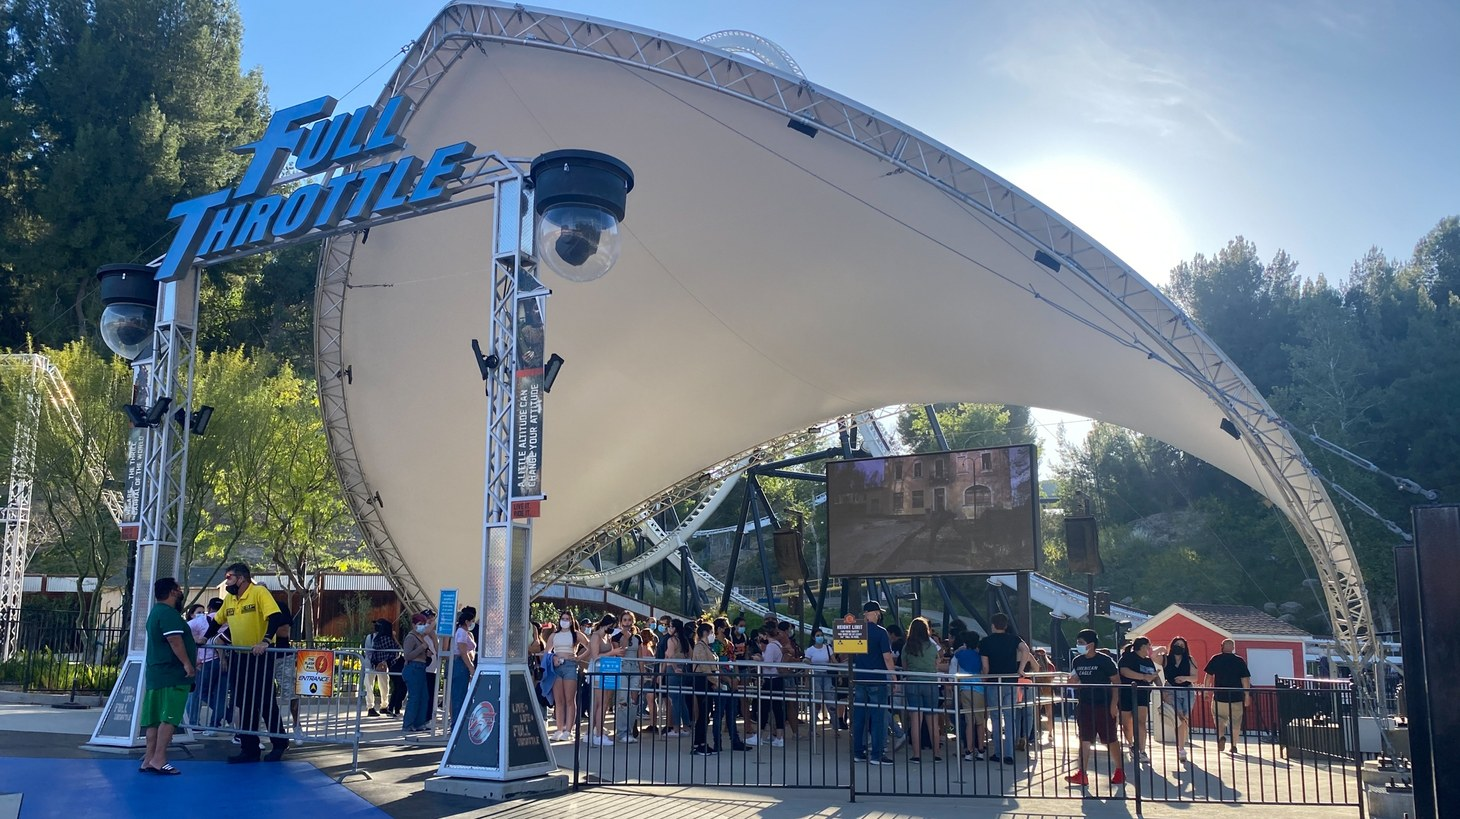 Six Flags recently reopened at reduced capacity. Guests still formed long lines, and not everyone maintained social distancing.